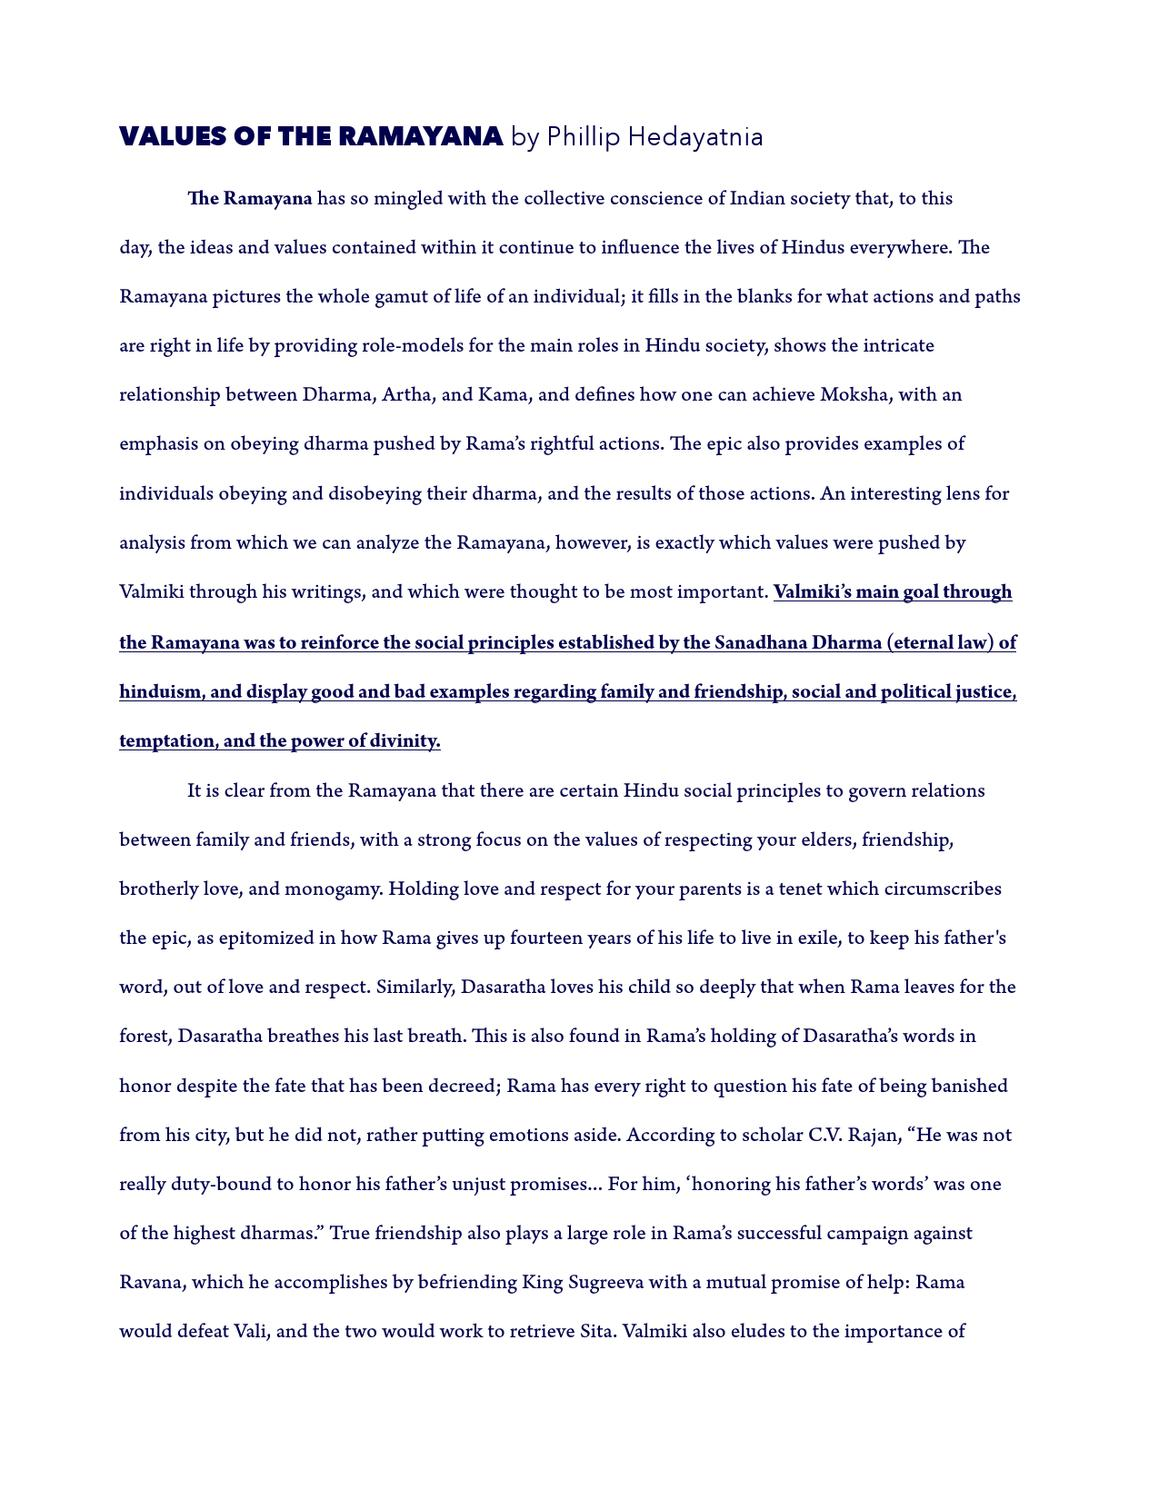 Values Of The Ramayana Essay By Phillip Hedayatnia  Issuu  Buy Essay Papers also Business Plans Writing Services  My Hobby Essay In English